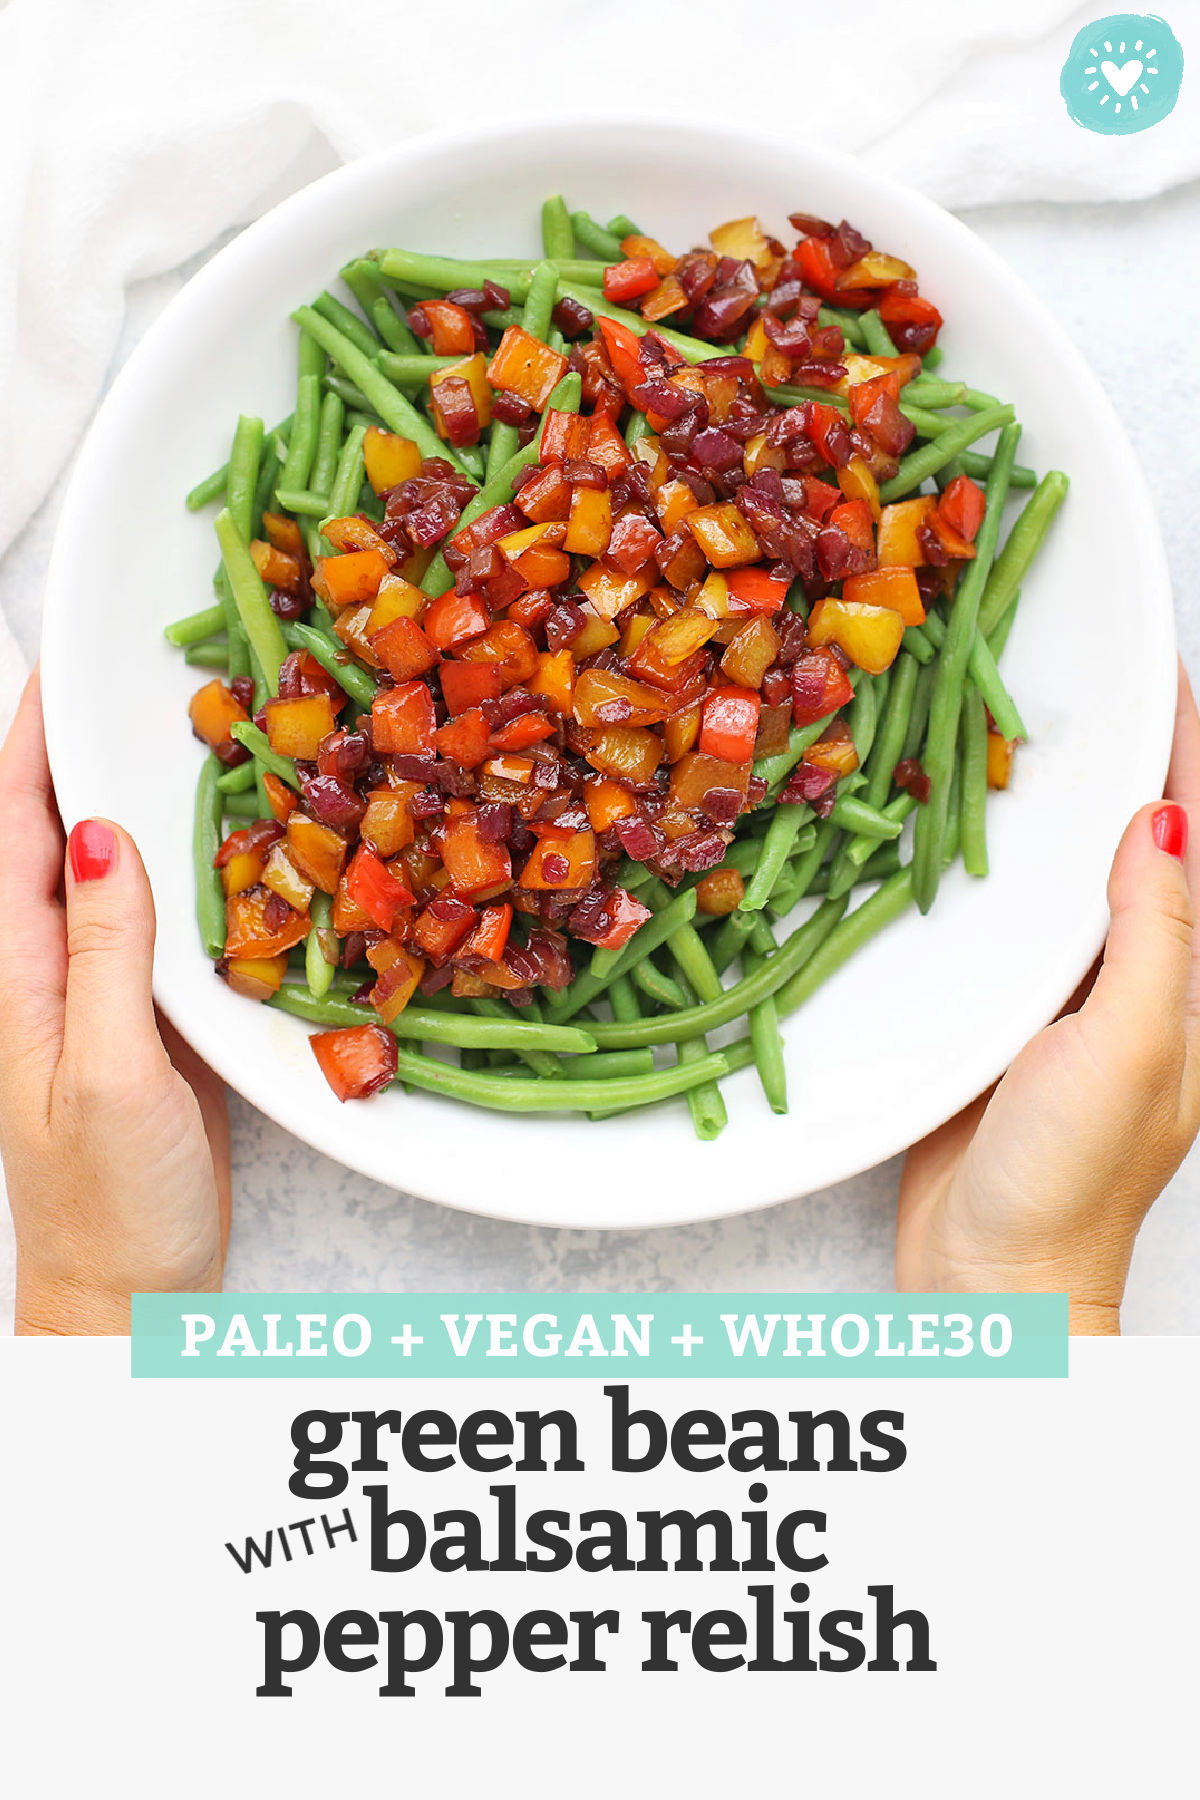 Green Beans with Balsamic Pepper Relish - This bright, beautiful side dish will steal the spotlight at dinner, thanks to the sweet, tangy balsamic bell pepper relish. It's incredible! (Vegan, Paleo & Whole30 approved!) // pepper relish // green beans recipe // balsamic green beans // green beans with bell peppers // gluten free // dairy free // vegetarian